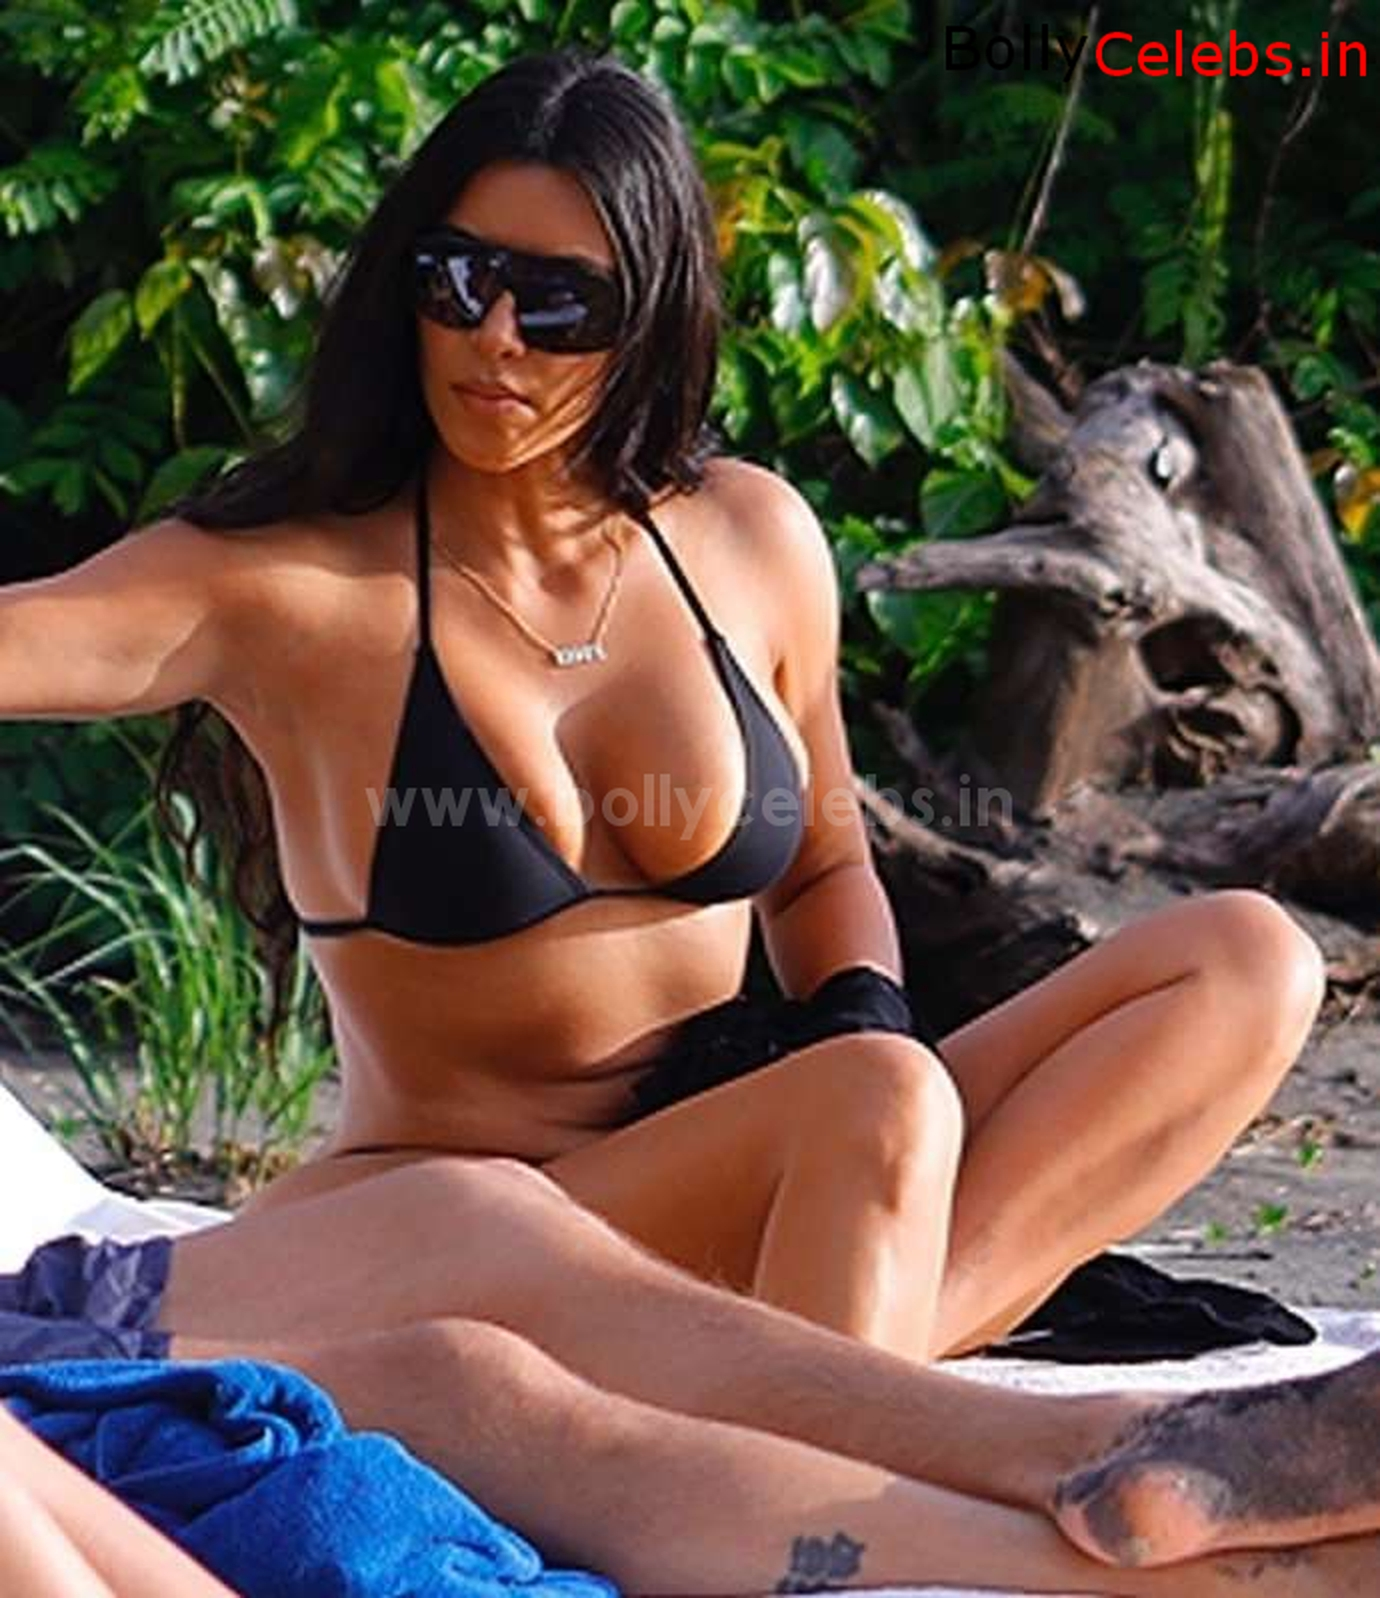 Kim Kardashian Sexy Cameltoe Huge Pussy Lips Boobs and Booty ~ bollycelebs.in Exclusive Celebrity Pics